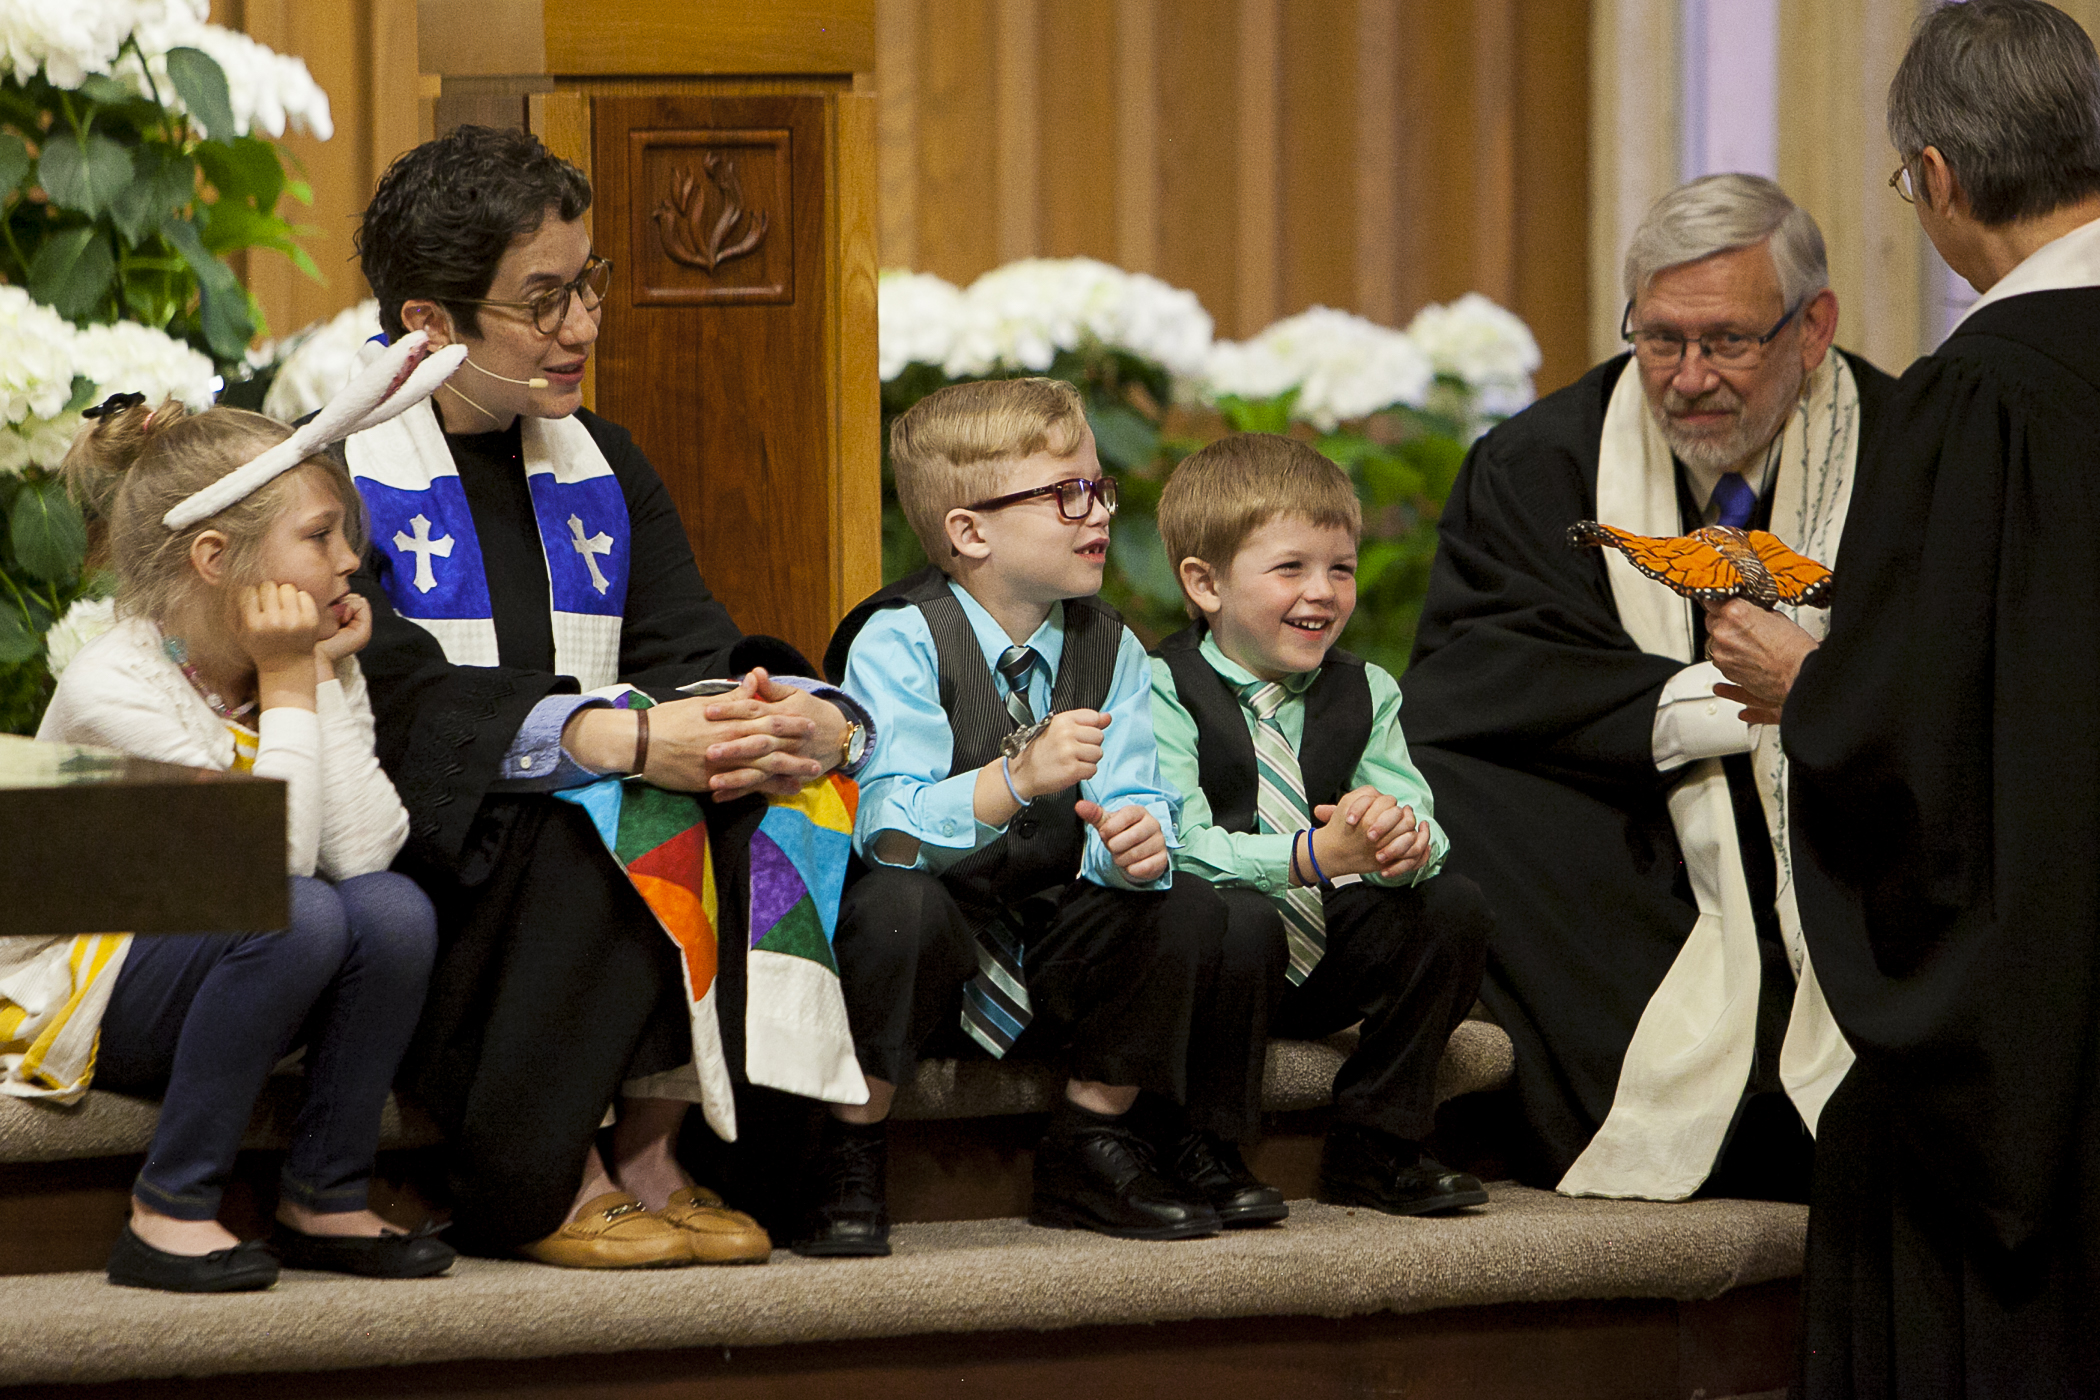 Rev. Lindsey Clifton and Rev. Joe Blankinship enjoy the children's Message with the kids during Sunday morning worship.